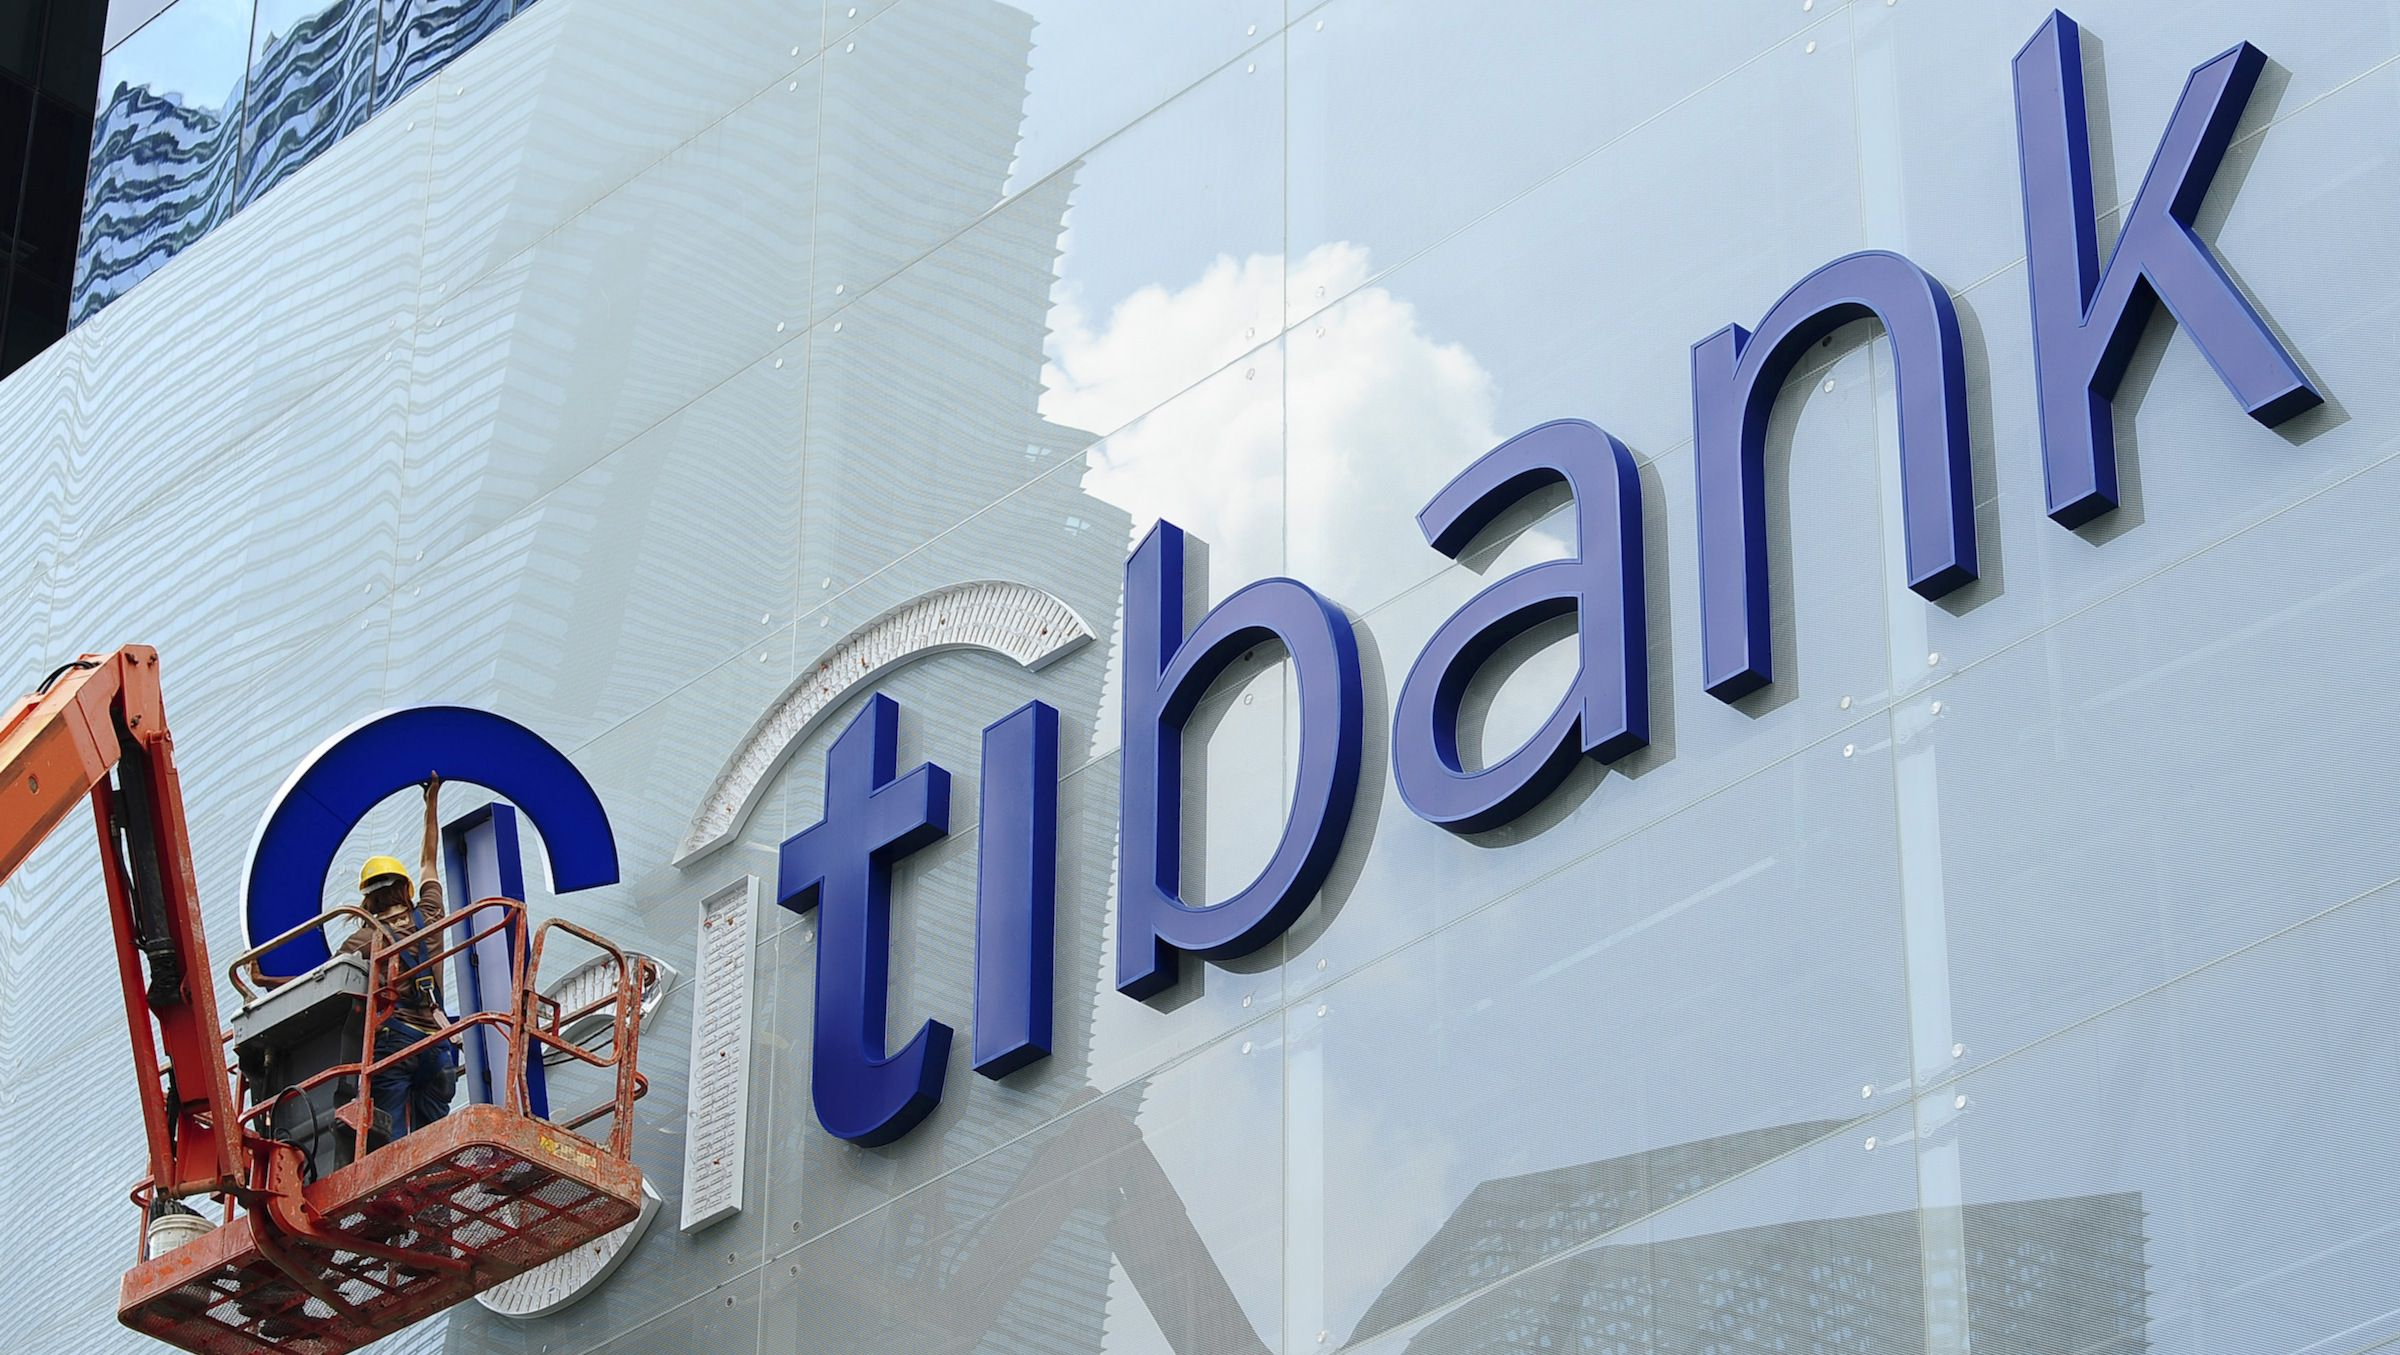 Construction workers install Citibank's neon sign on its Singapore main office at the central business district November 29, 2011. Citigroup Inc has no plans to reduce investment bankers in Southeast Asia despite an expected drop in equity capital market volumes, as clients have begun to eye the Asian assets of European companies, Tracey Woon, Citi's Southeast Asia investment banking head, said. Picture taken November 29, 2011.  To match interview CITI-SEA/   REUTERS/Harry Suhartono (SINGAPORE - Tags: BUSINESS) - RTR2UOP6